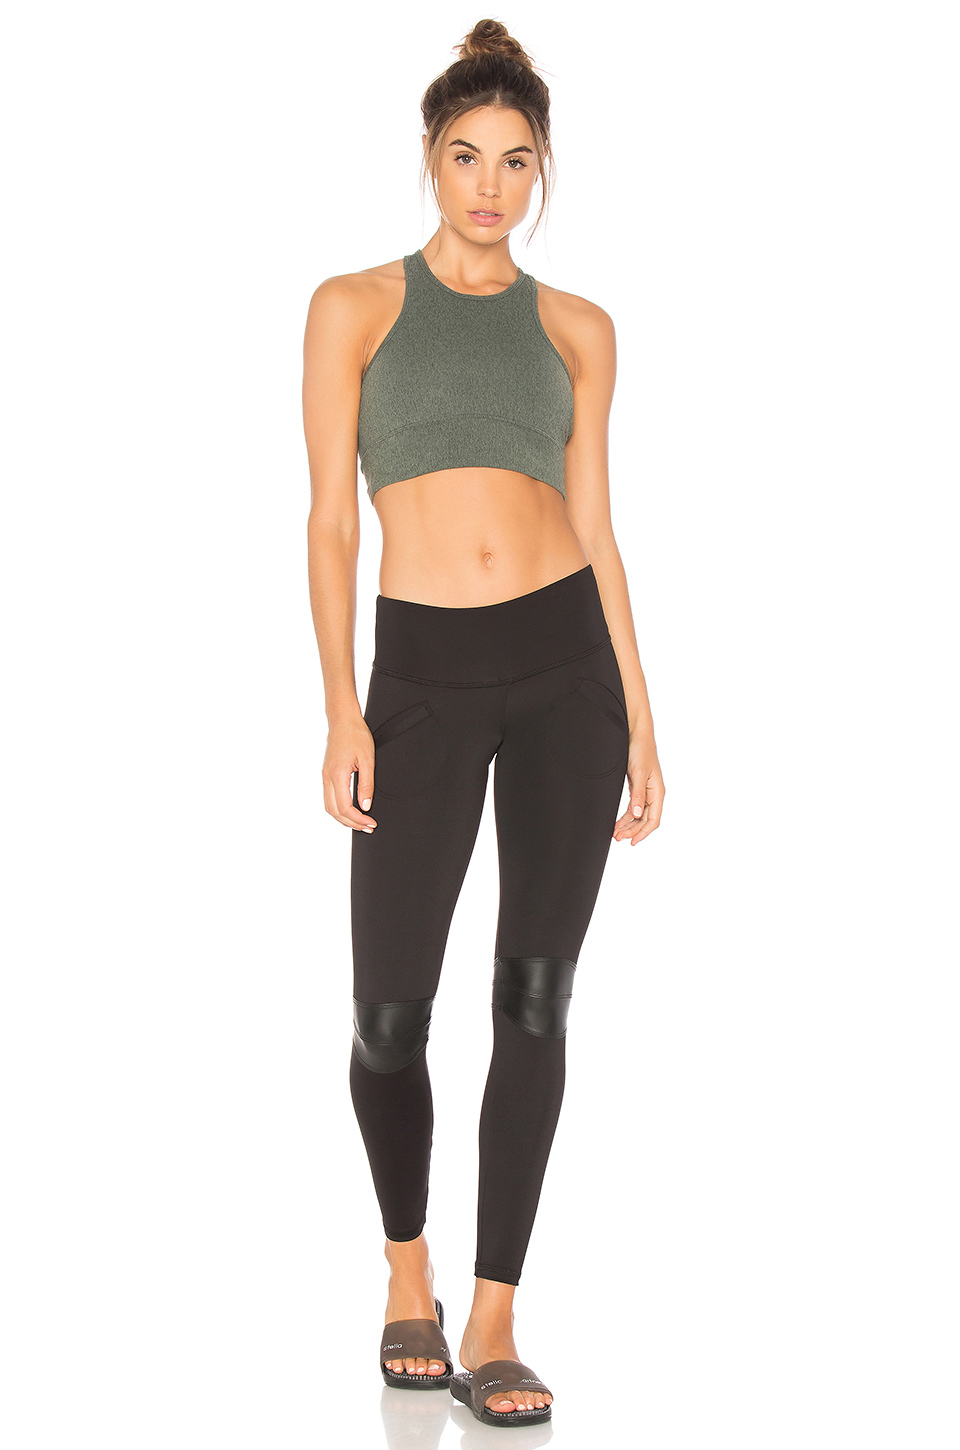 wholesale design your own women fitness yoga clothing manufacturing workout athletic yoga leggings sports with custom logo